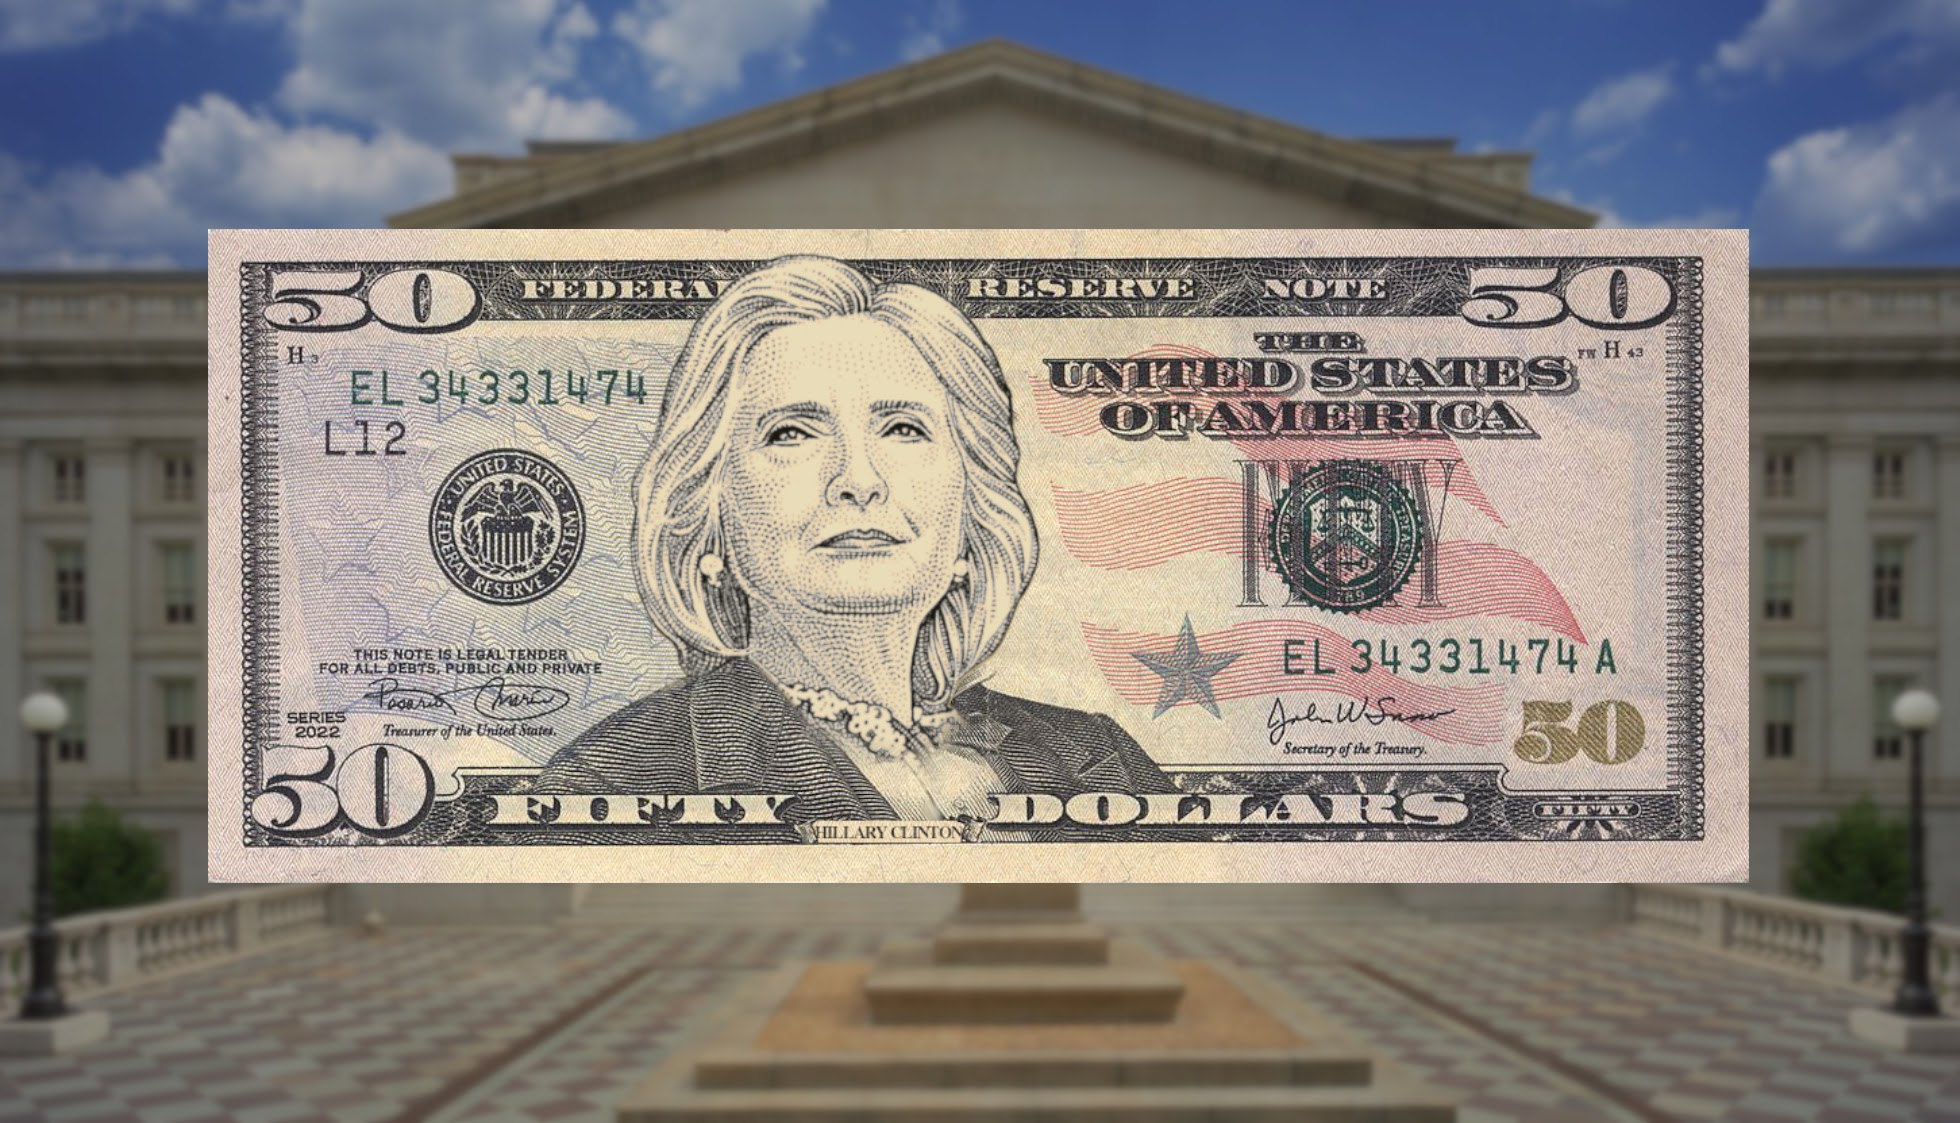 Hillary Clinton to be new face of $50 bill